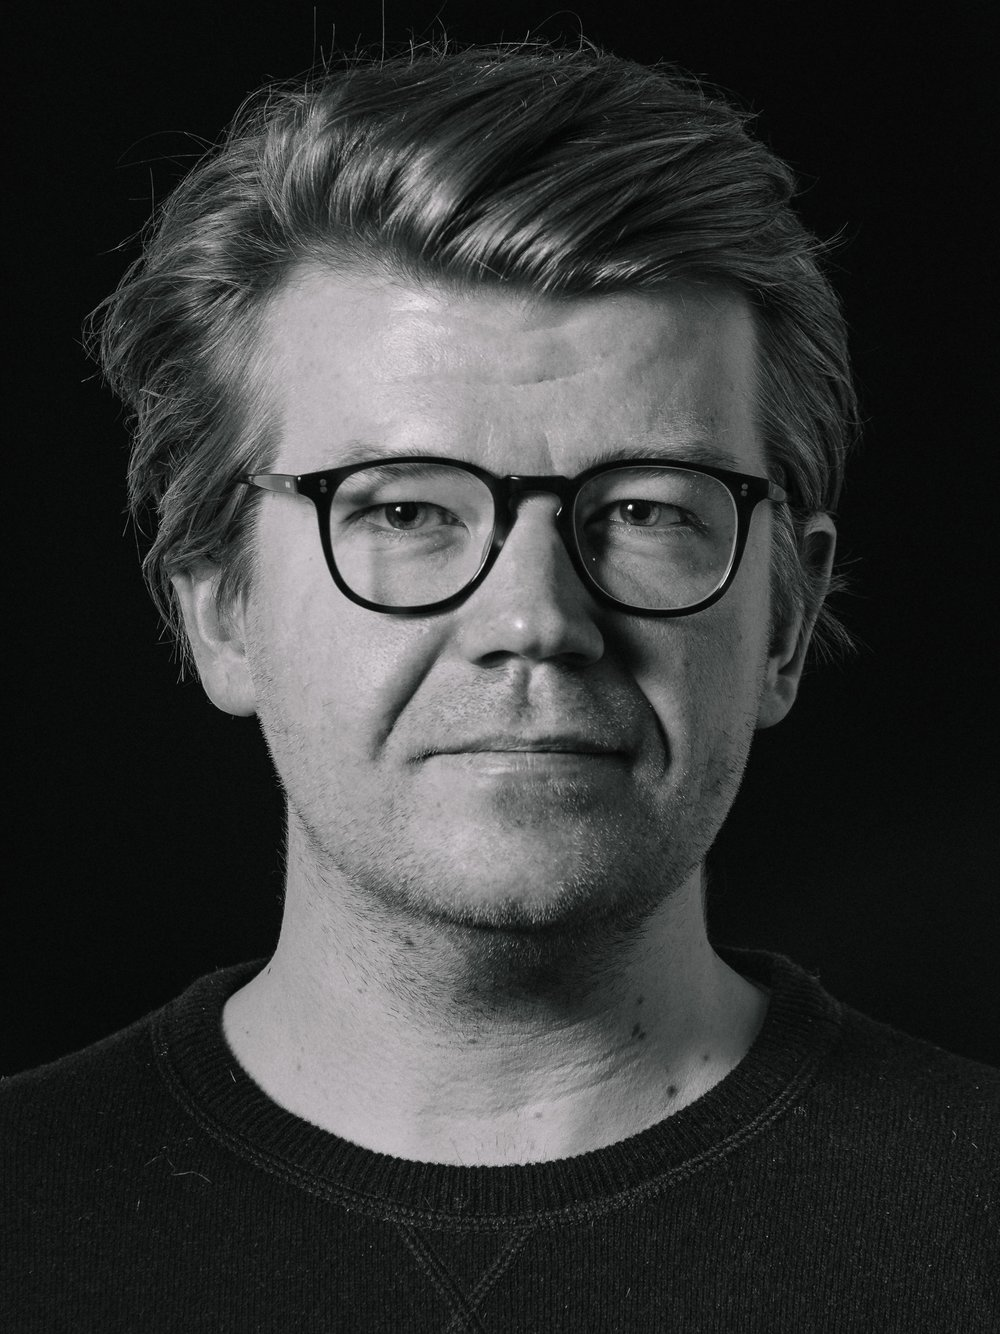 Jussi Mäkinen Head of Marketing. 10 years experience in leading global product marketing, technology branding and user research at Nokia. Previously Brand Director of Angry Birds and Vice President of Marketing for Rovio. M.Sc in Economics.